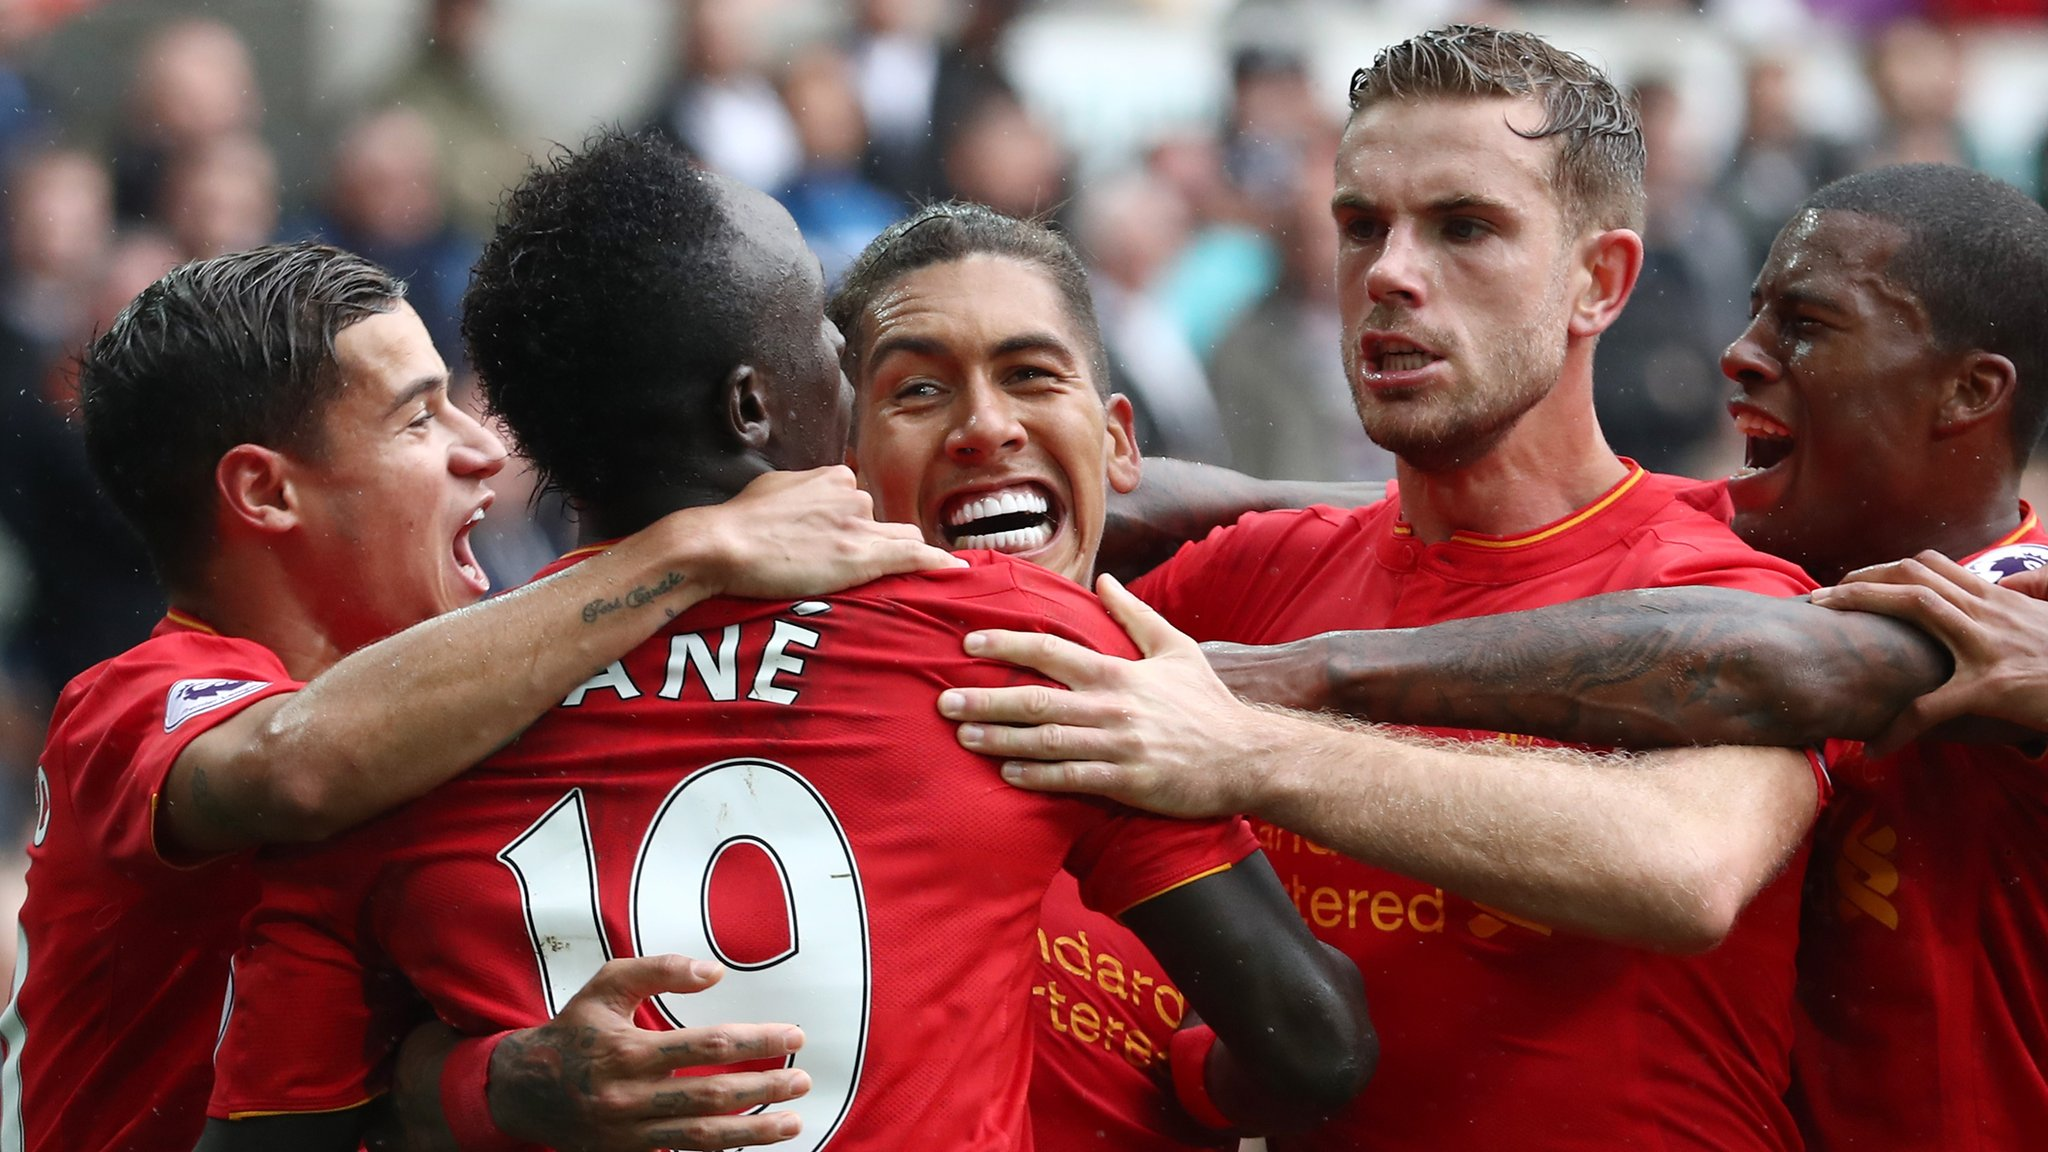 Liverpool come from behind at Swansea